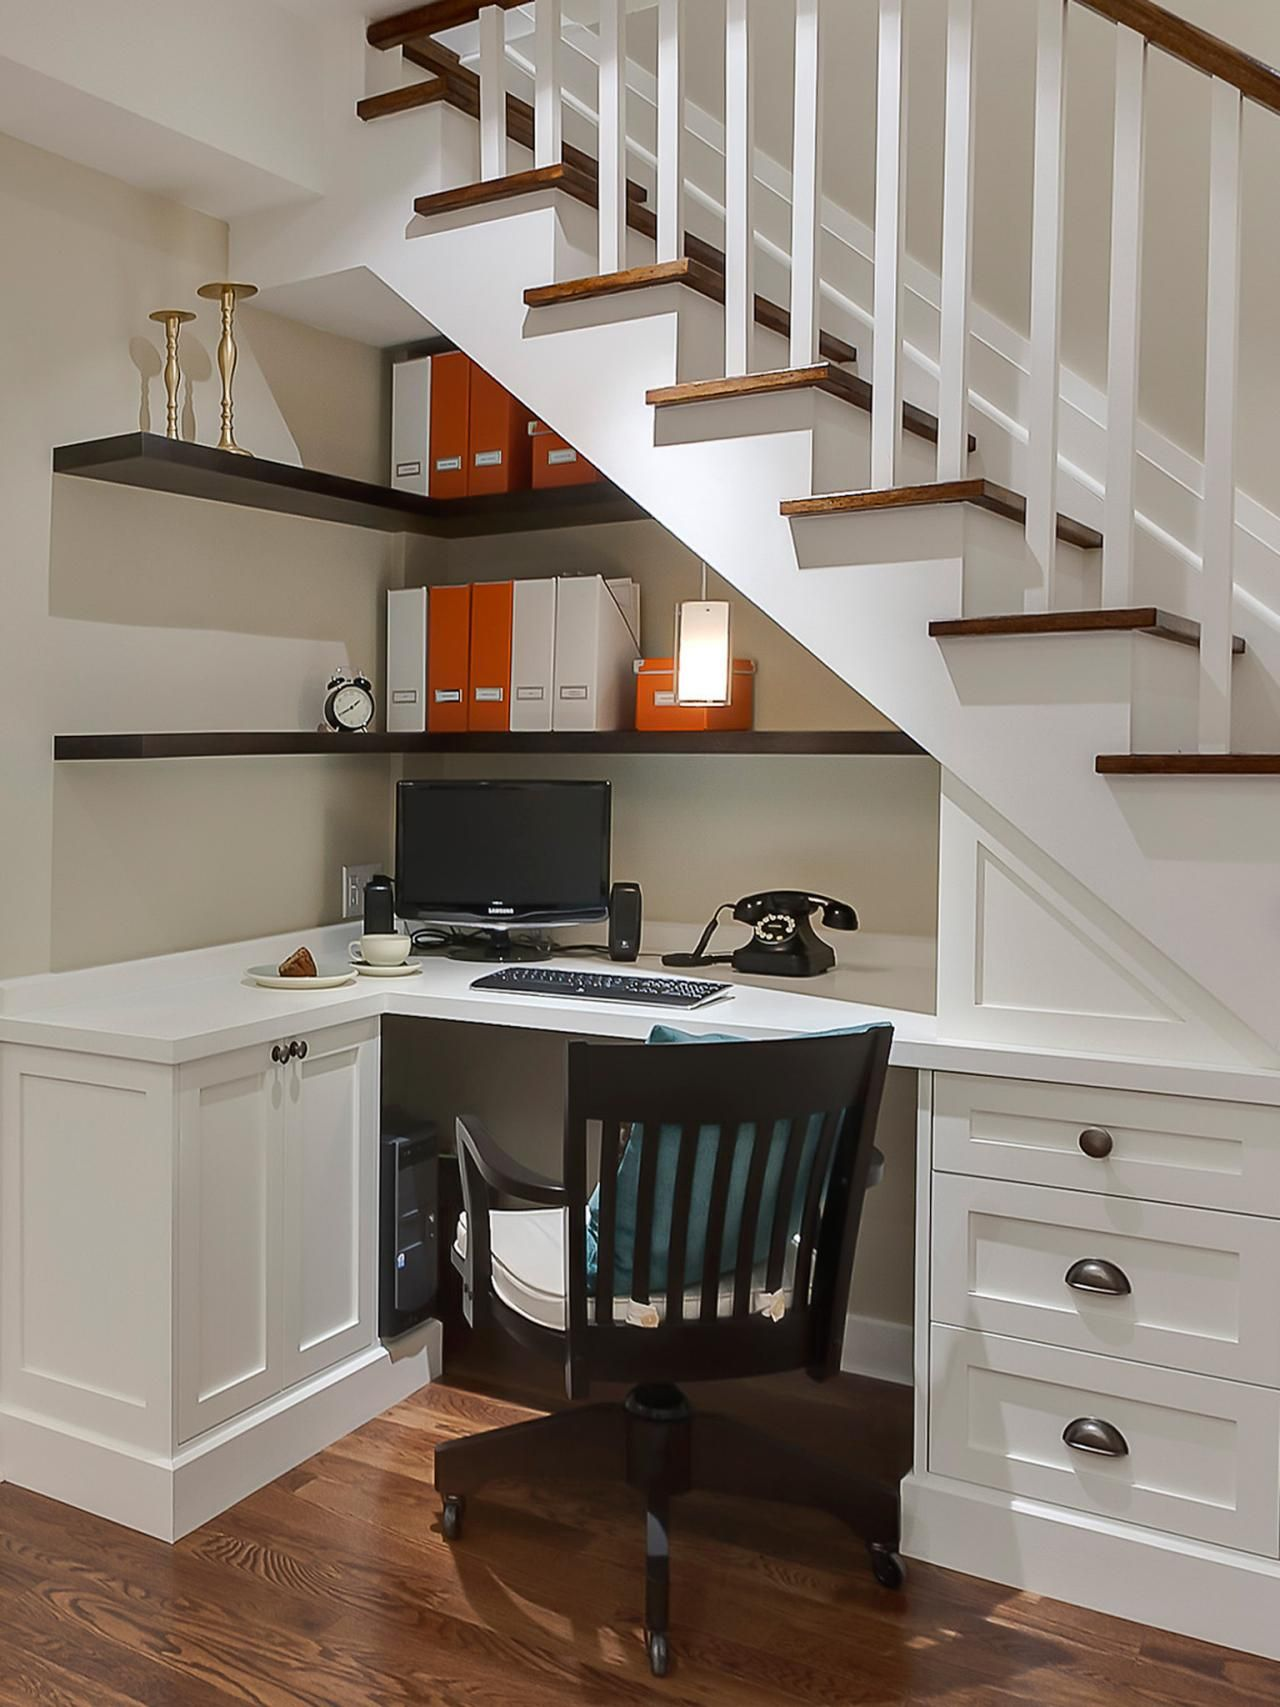 Pictures Of Organized Home Offices Nooks Home Remodeling And - Basement home office design ideas